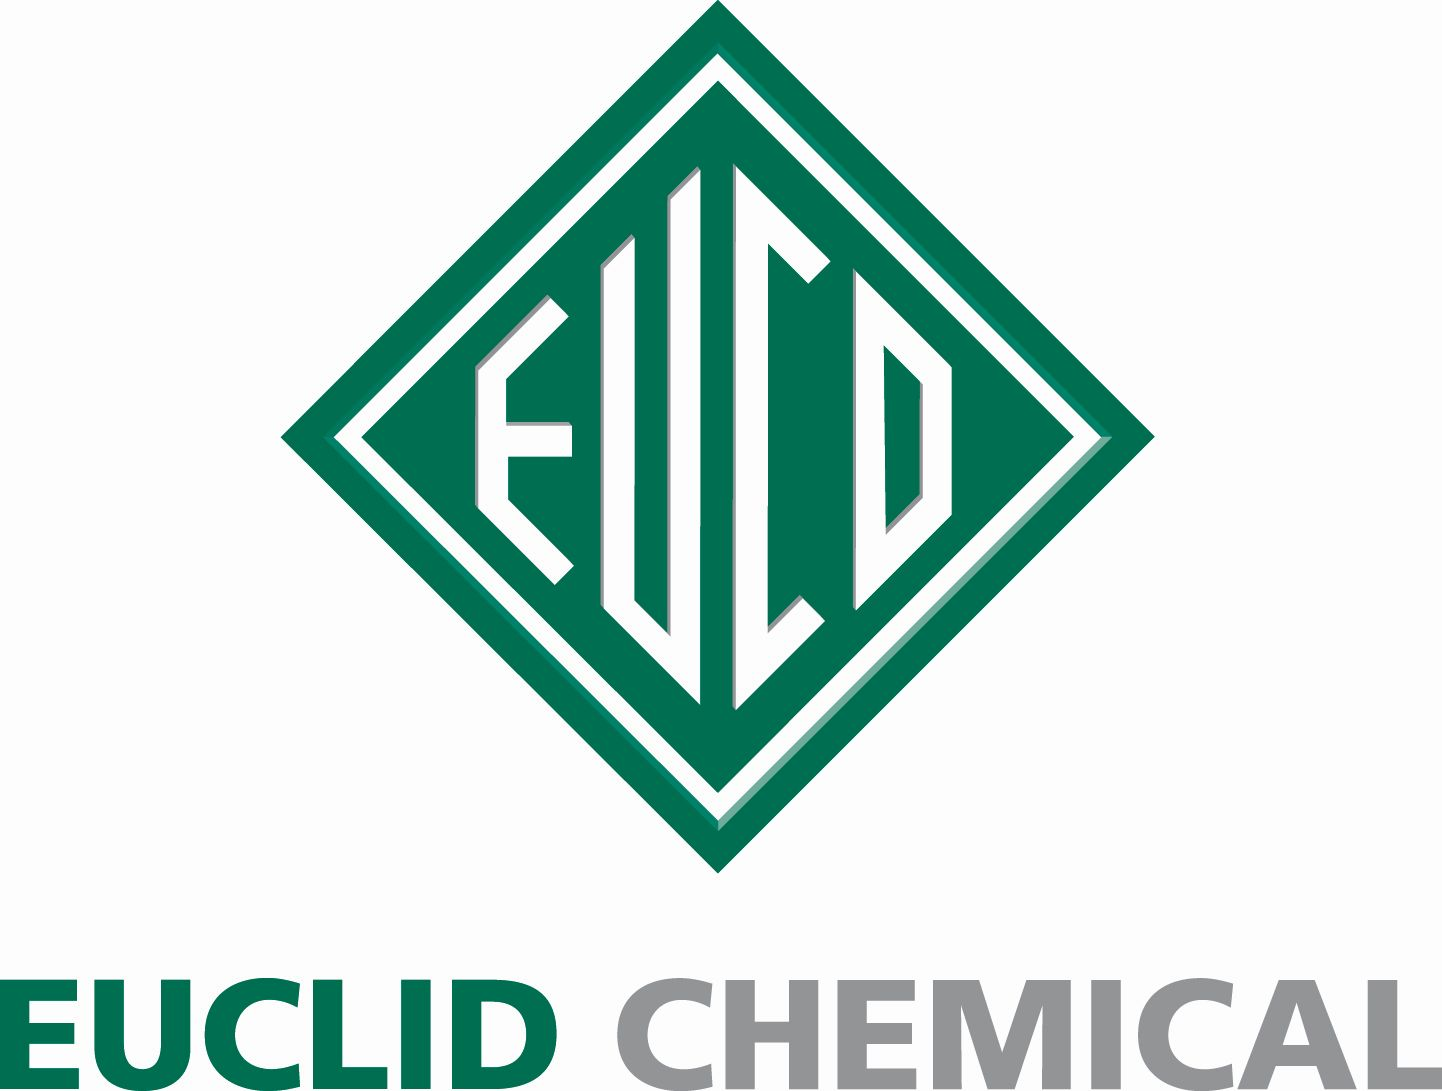 The Euclid Chemical Company